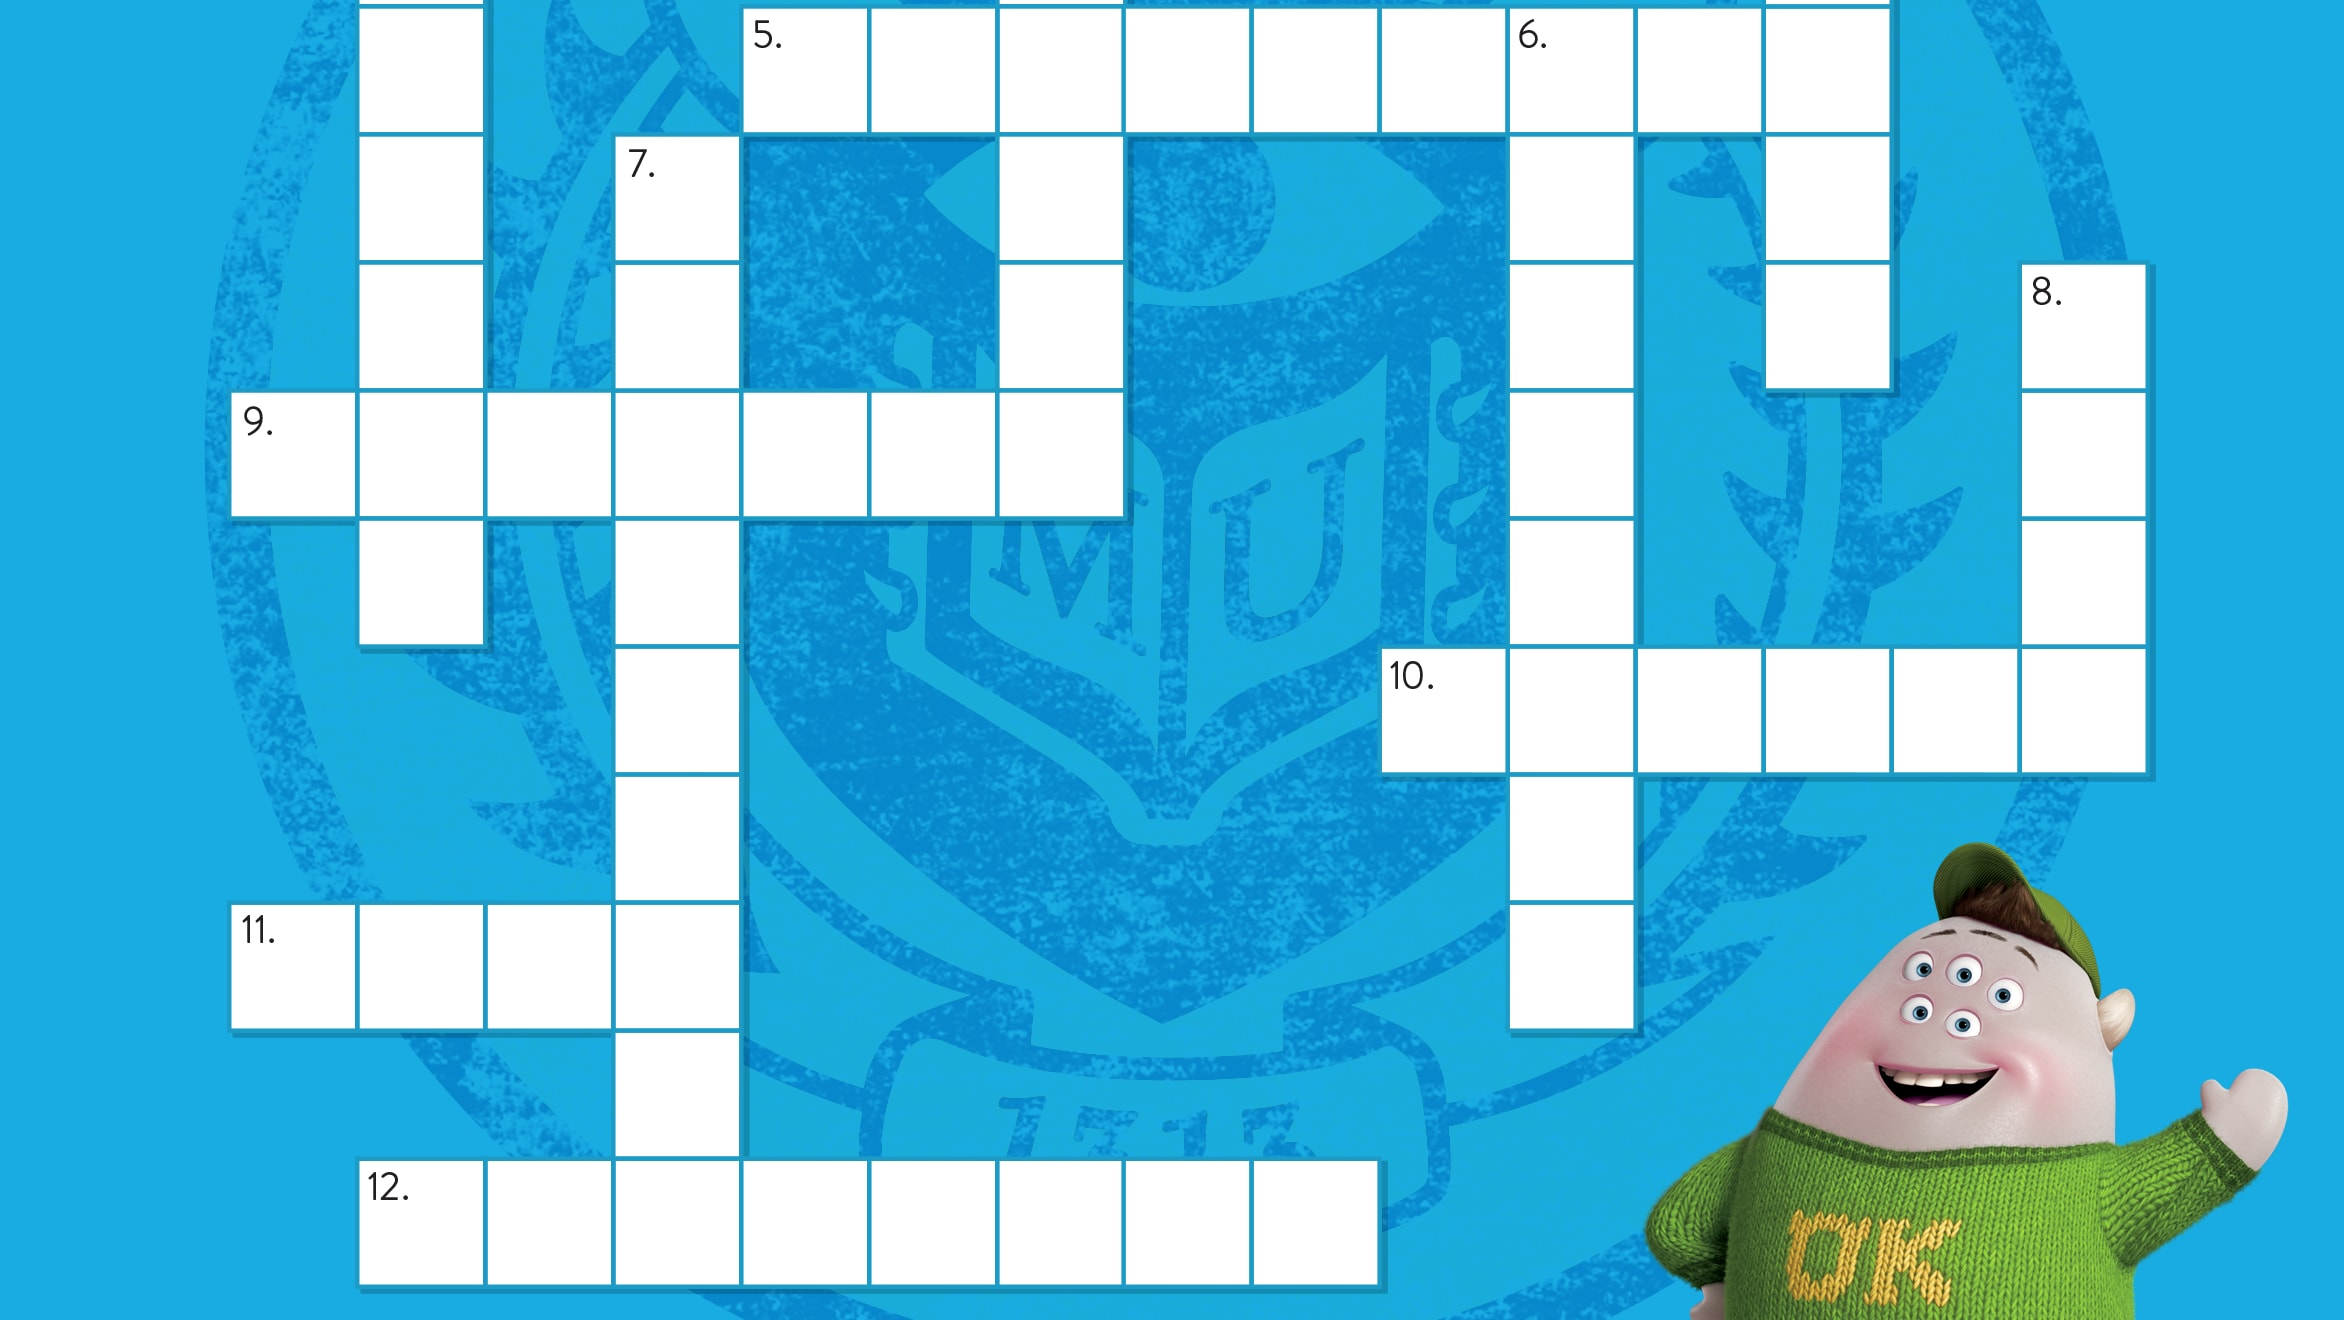 Calling All Wordsmiths! You've Got to Try This Pixar Crossword Puzzle